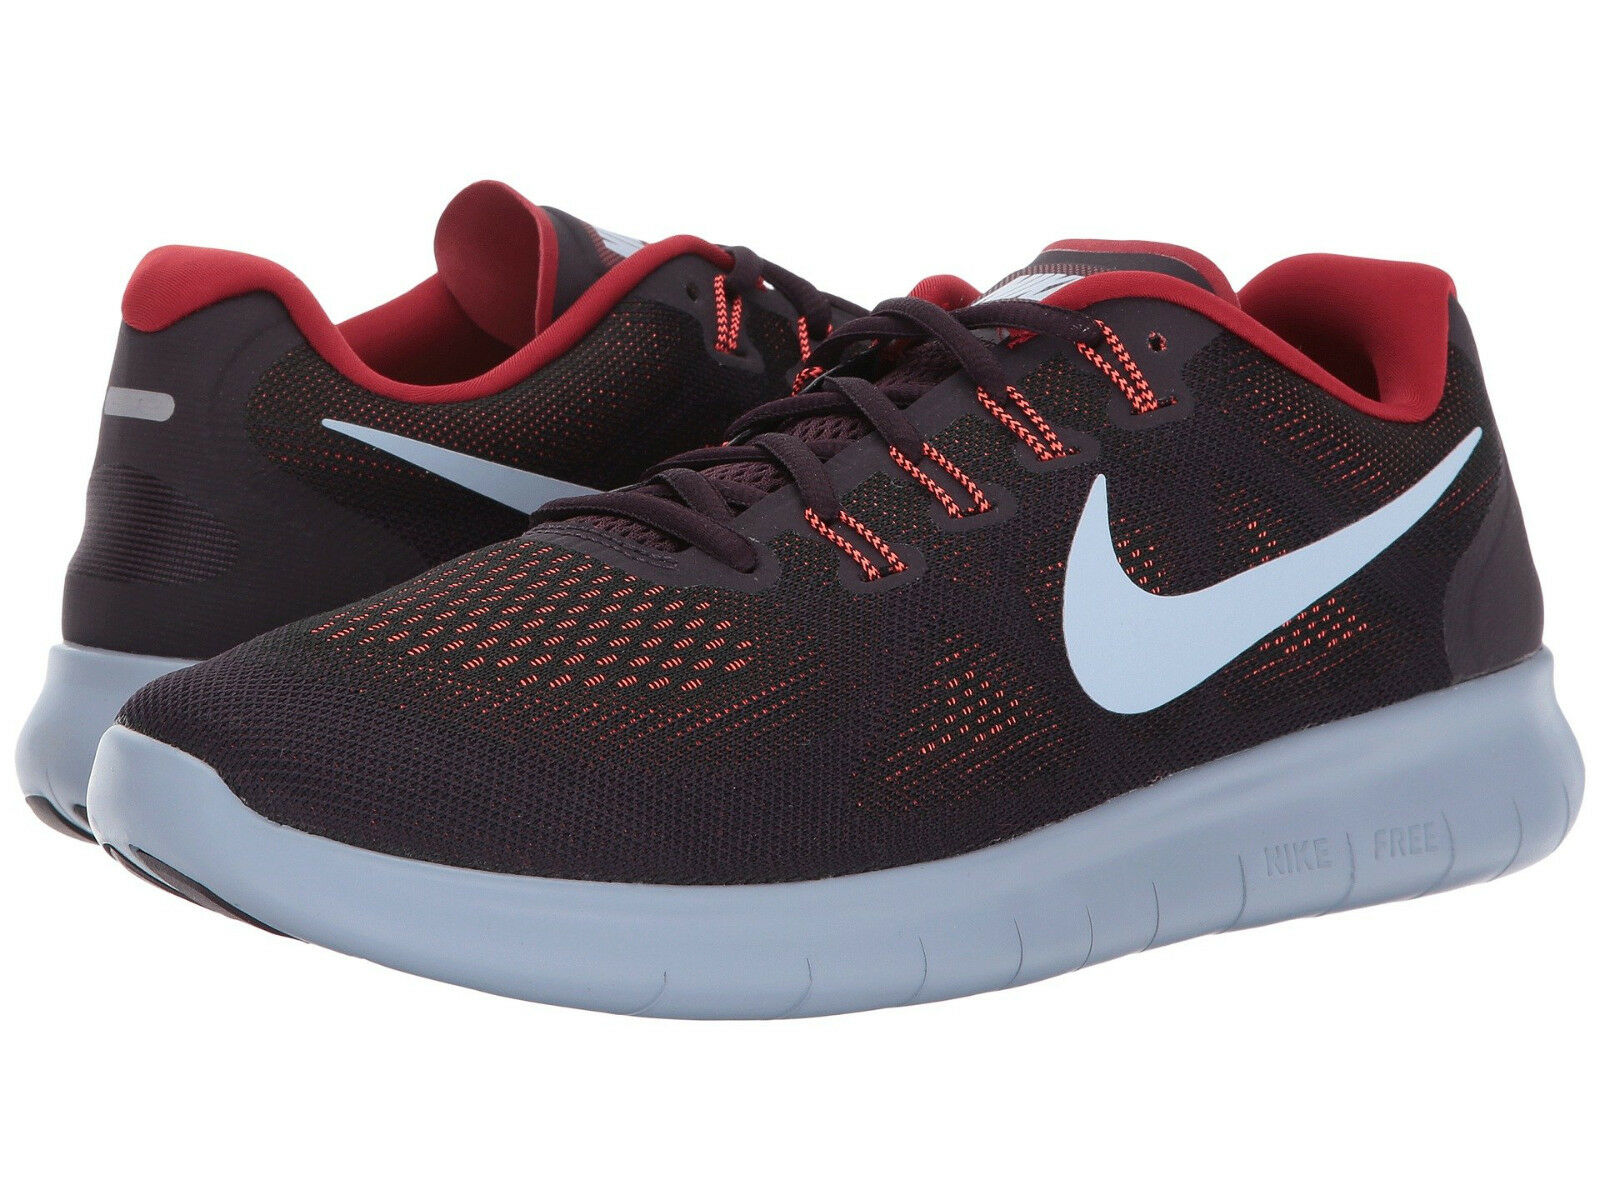 separation shoes 48c88 19625 Nike Hombres Hombres Hombres Free RN SZ 14 m Negro MESH running Sneakers  Shoes reducción de